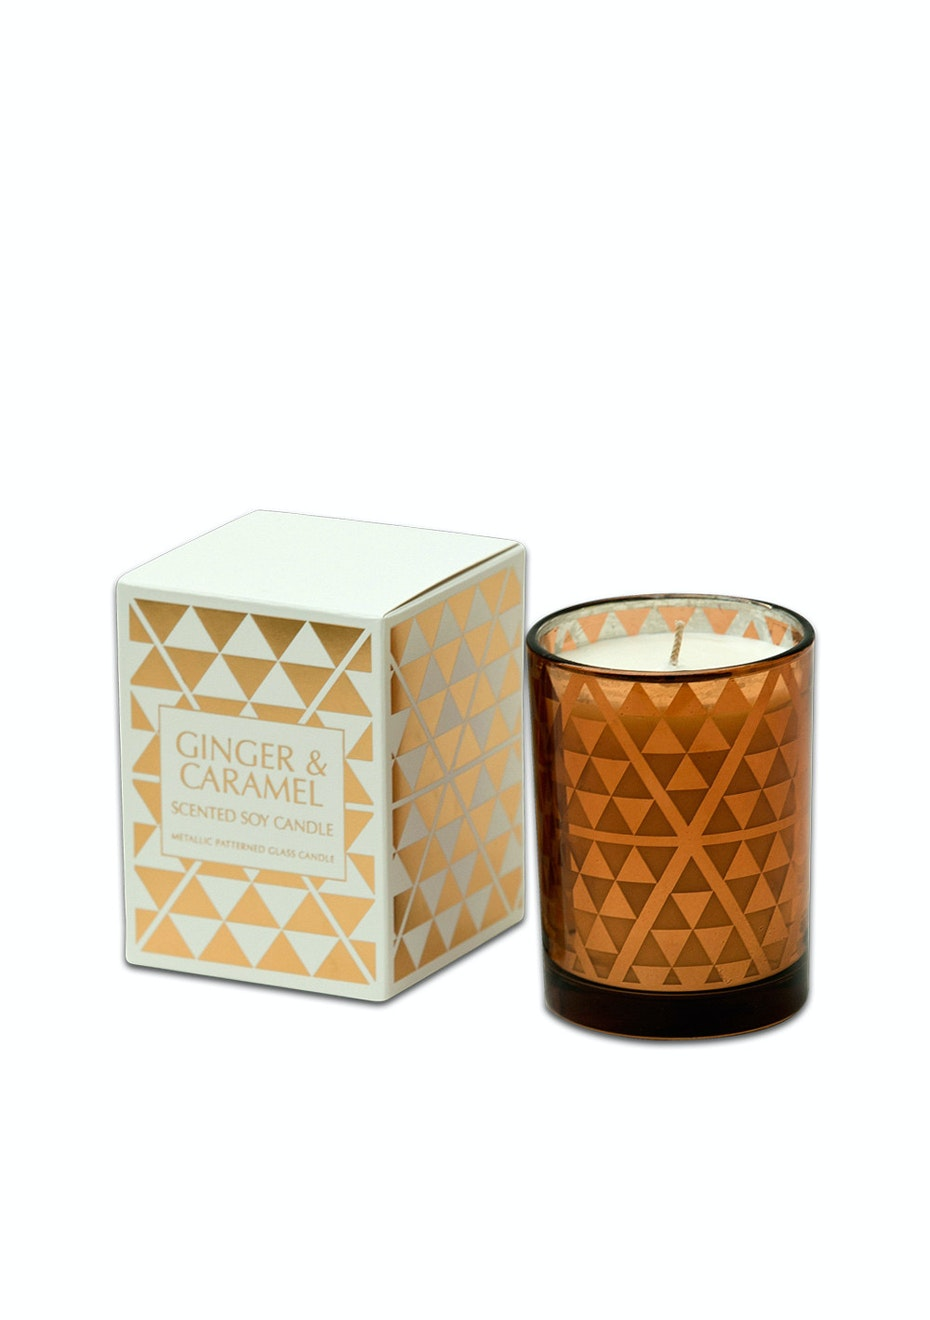 Me & My Trend - Ginger/Caramel Geo Candle